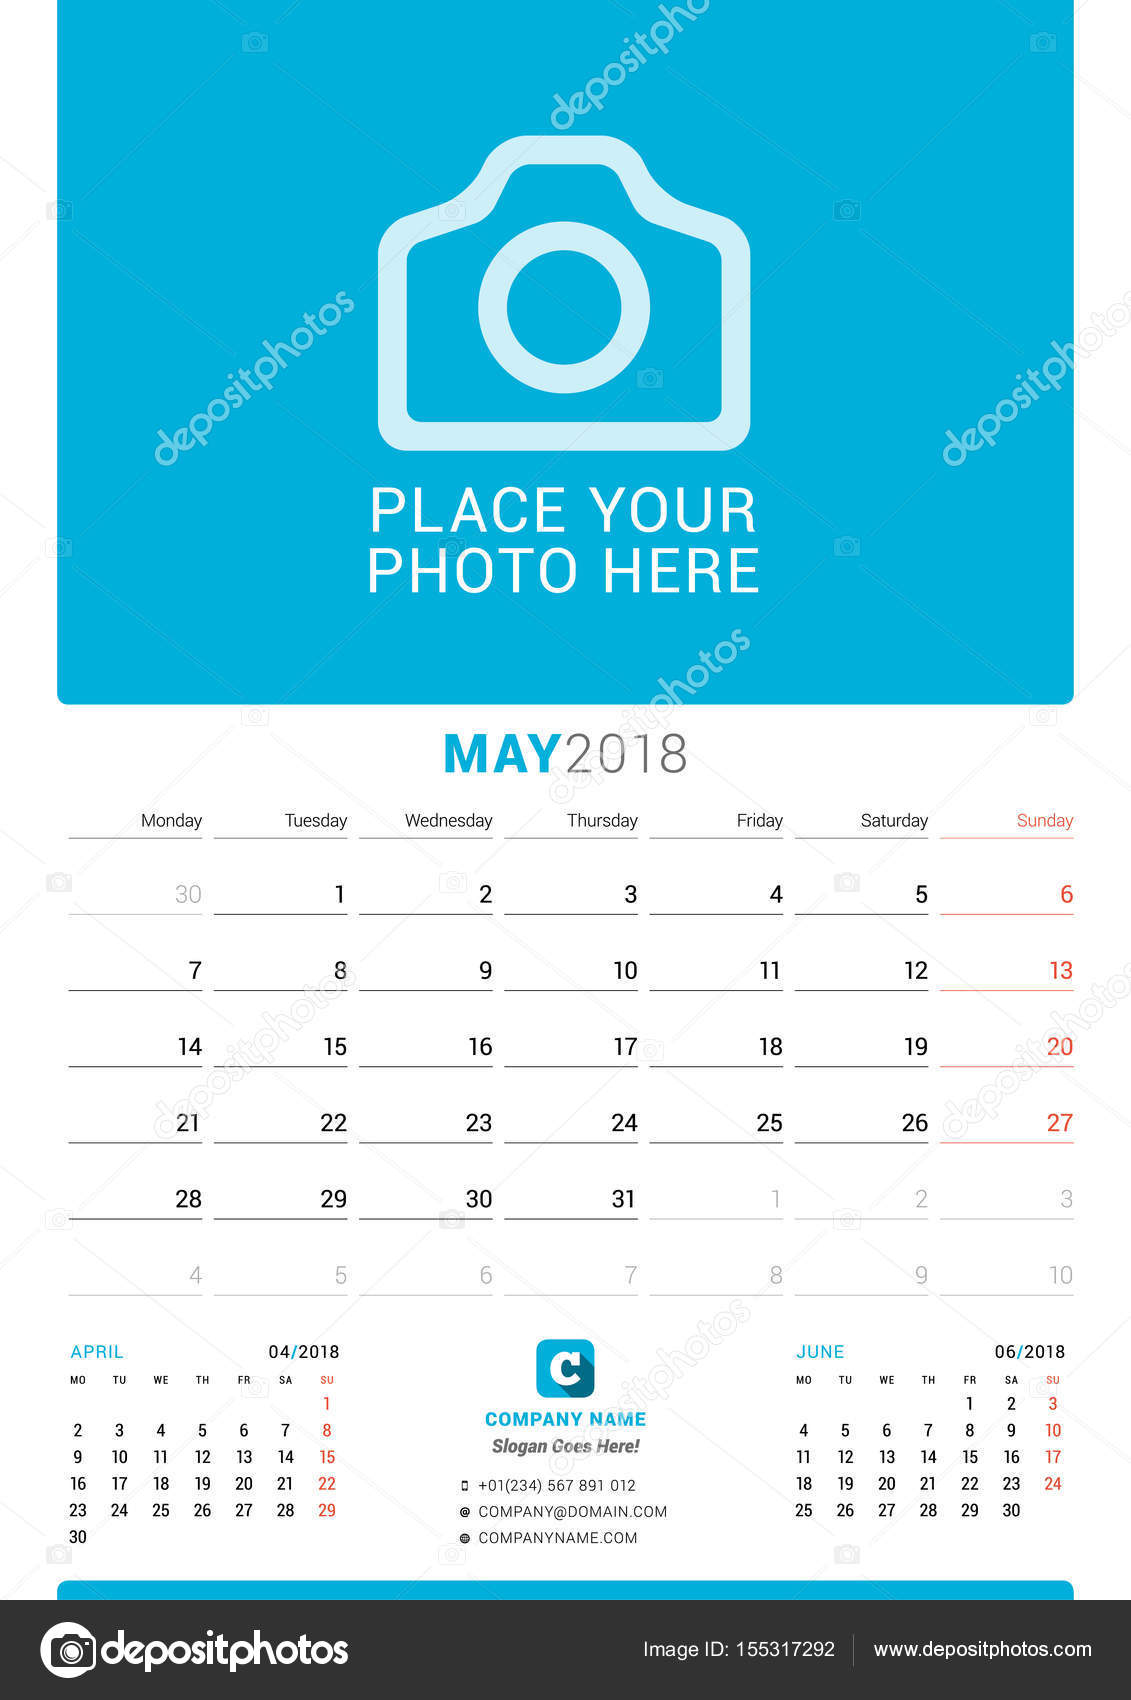 May 2018 Wall Monthly Calendar for 2018 Year Vector Design Print